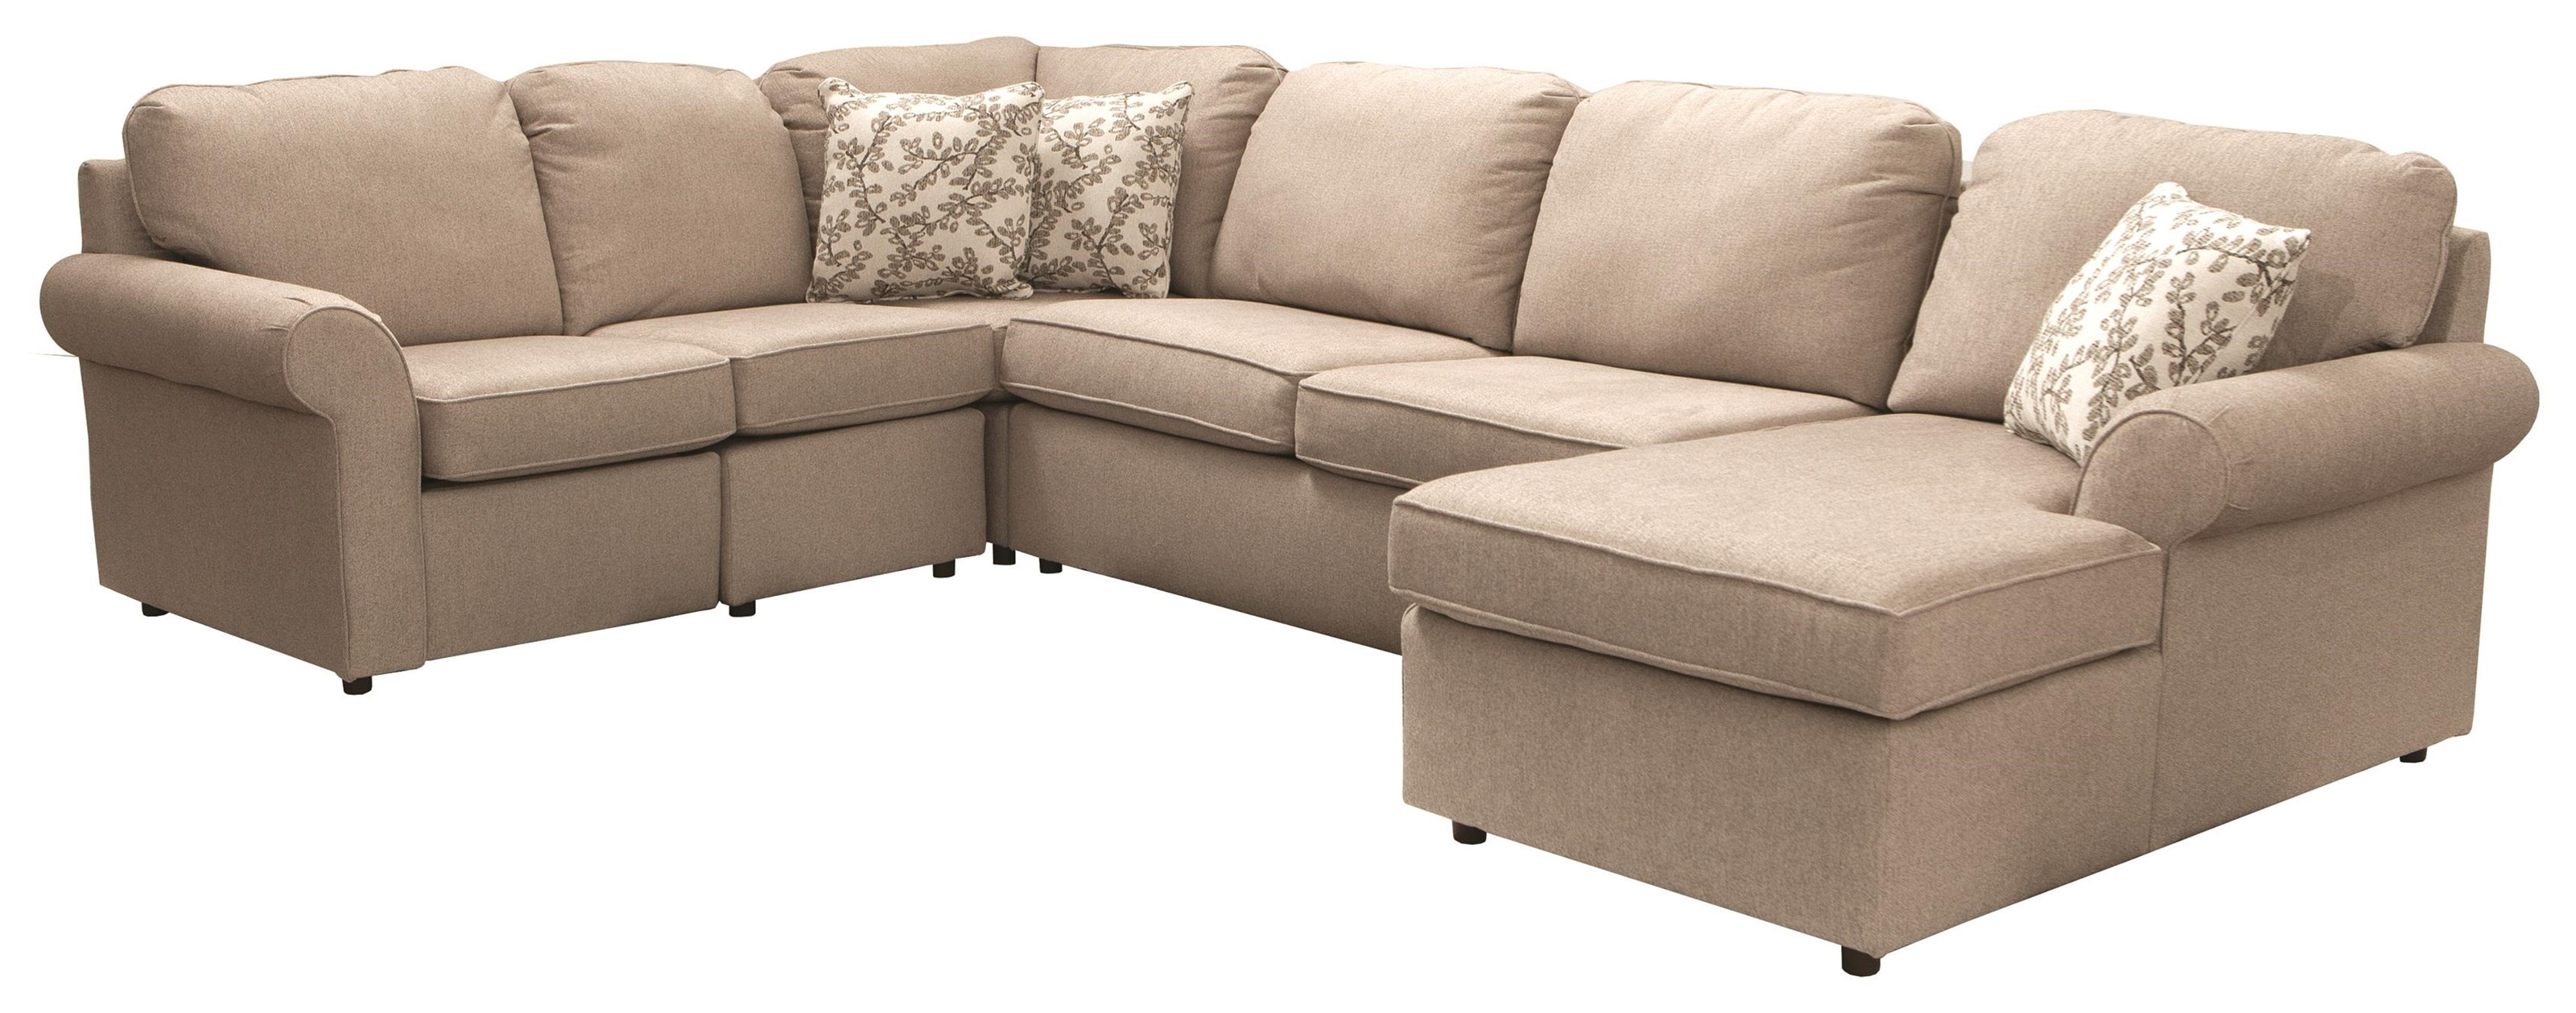 England Malibu 4 Piece Sectional With Power Reclining ...